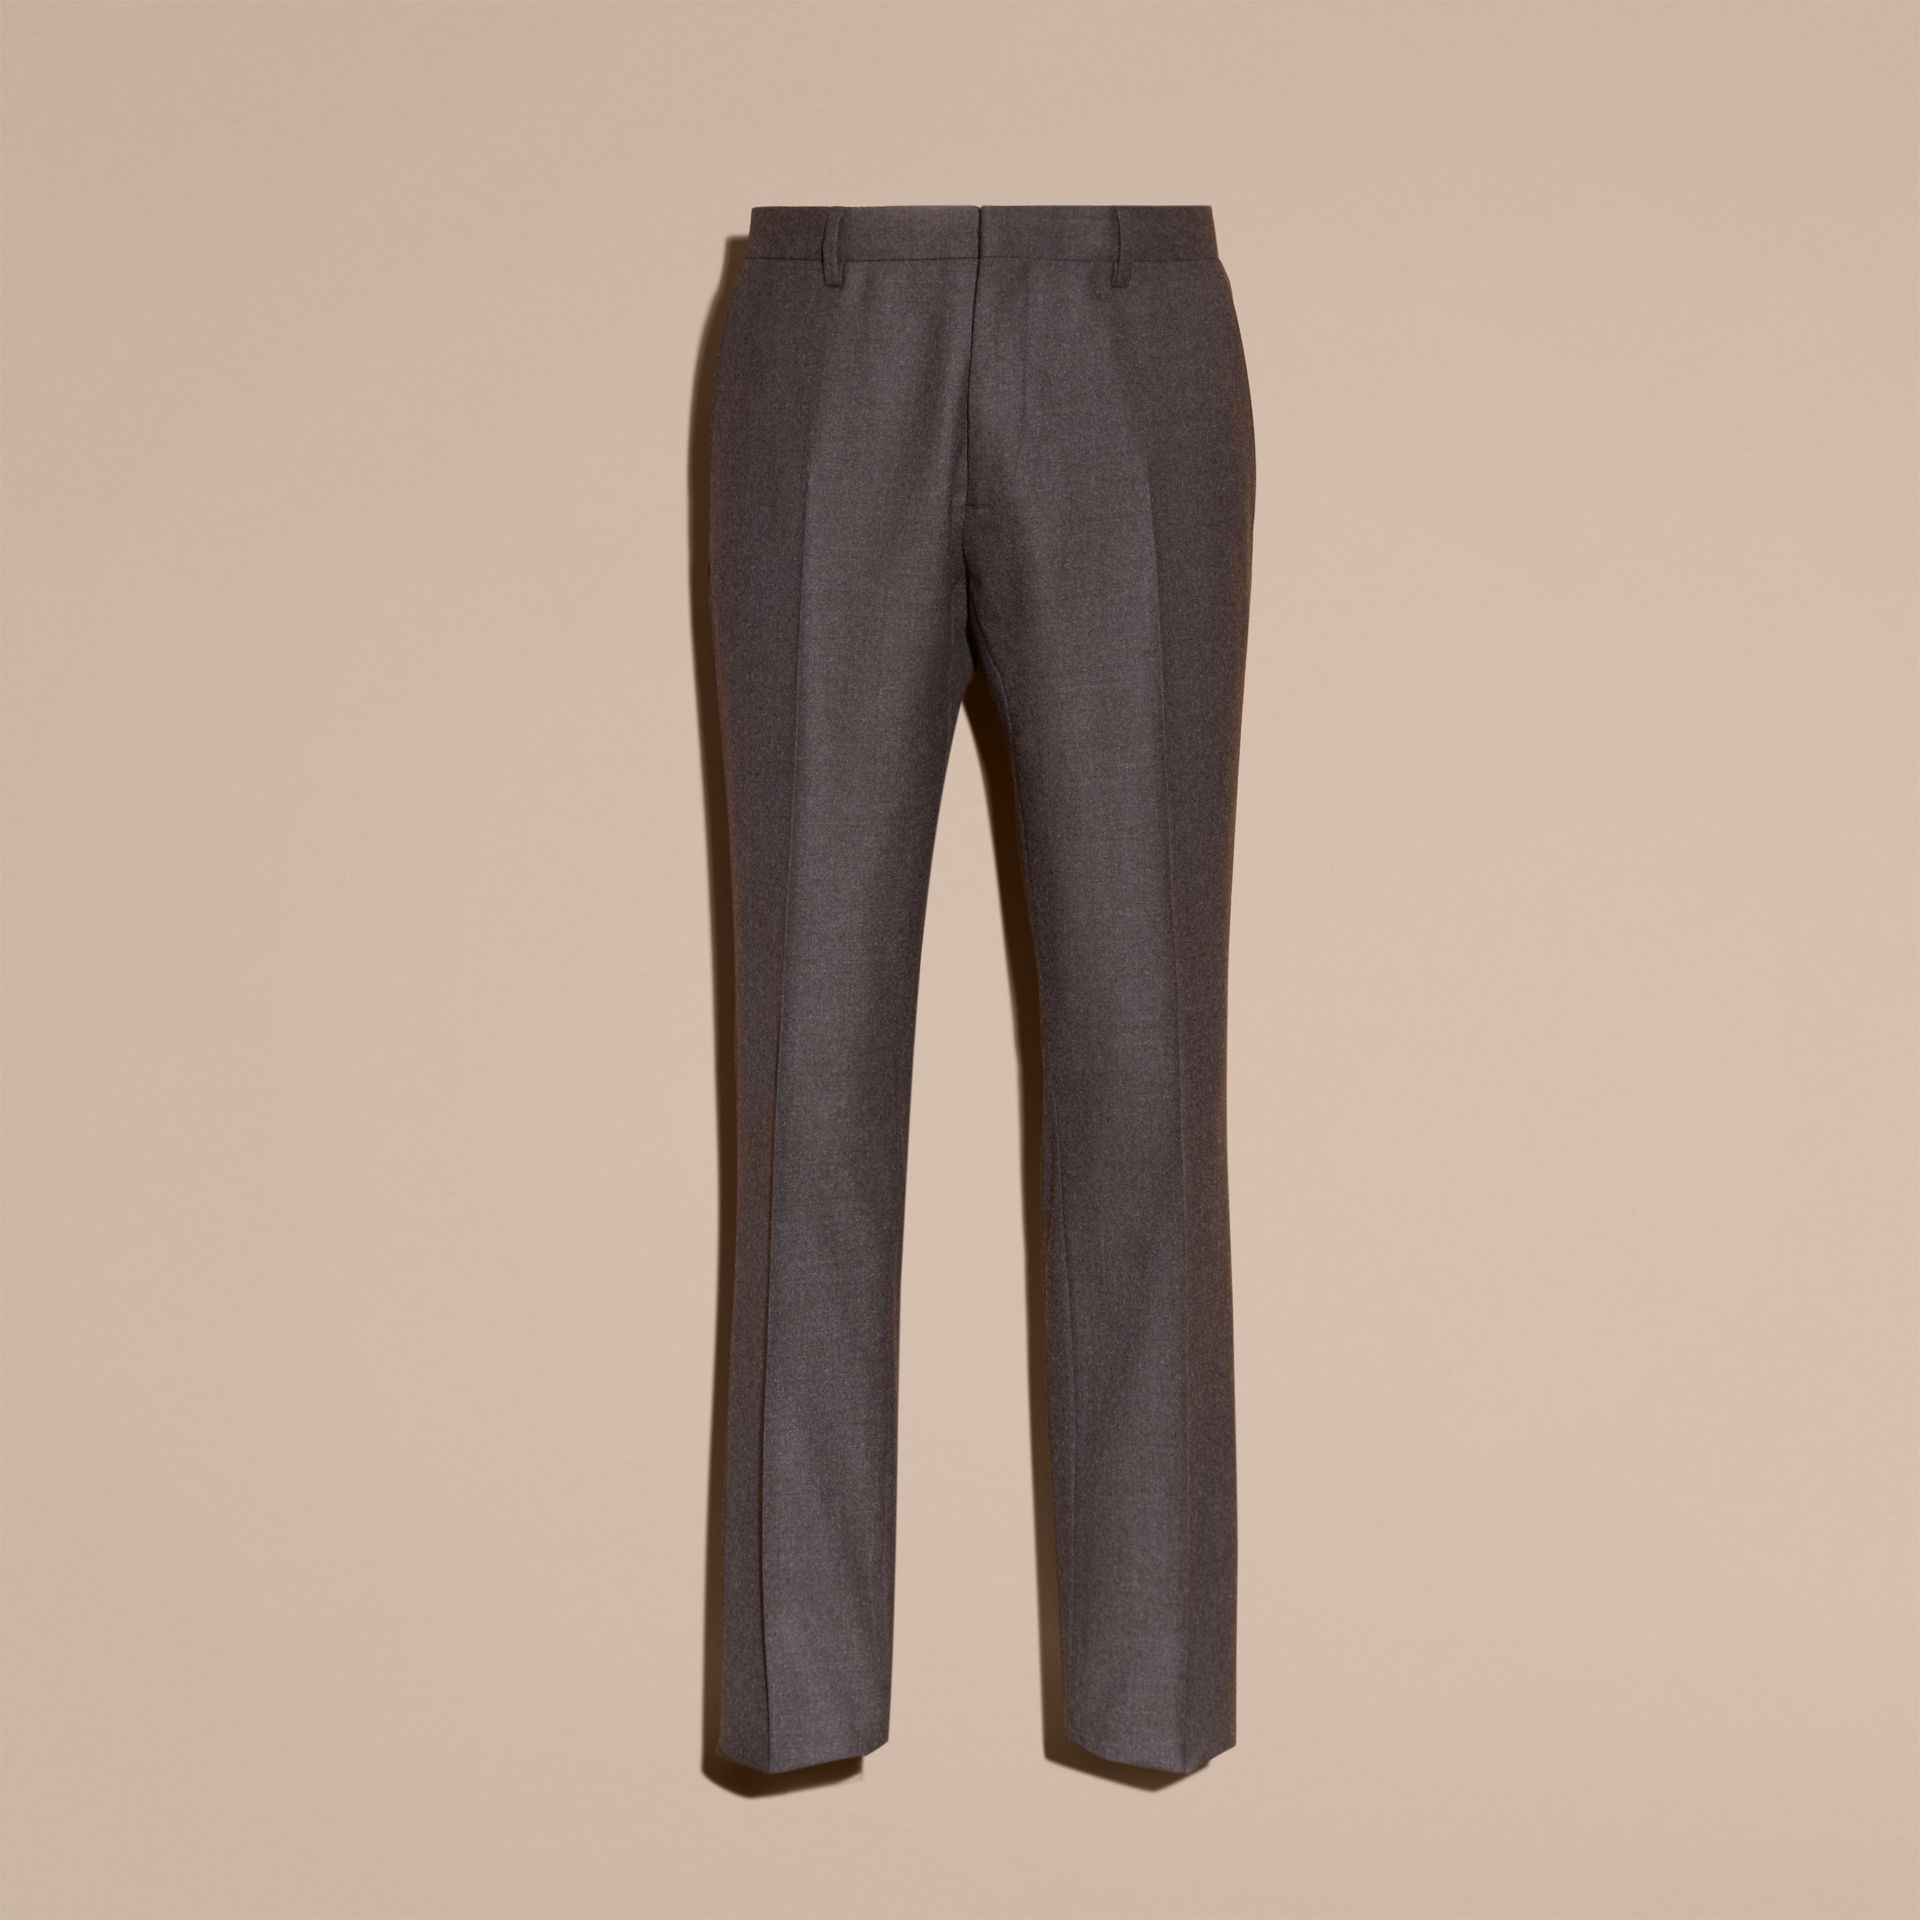 Dark grey melange Modern Fit Travel Tailoring Brushed Wool Trousers - gallery image 4